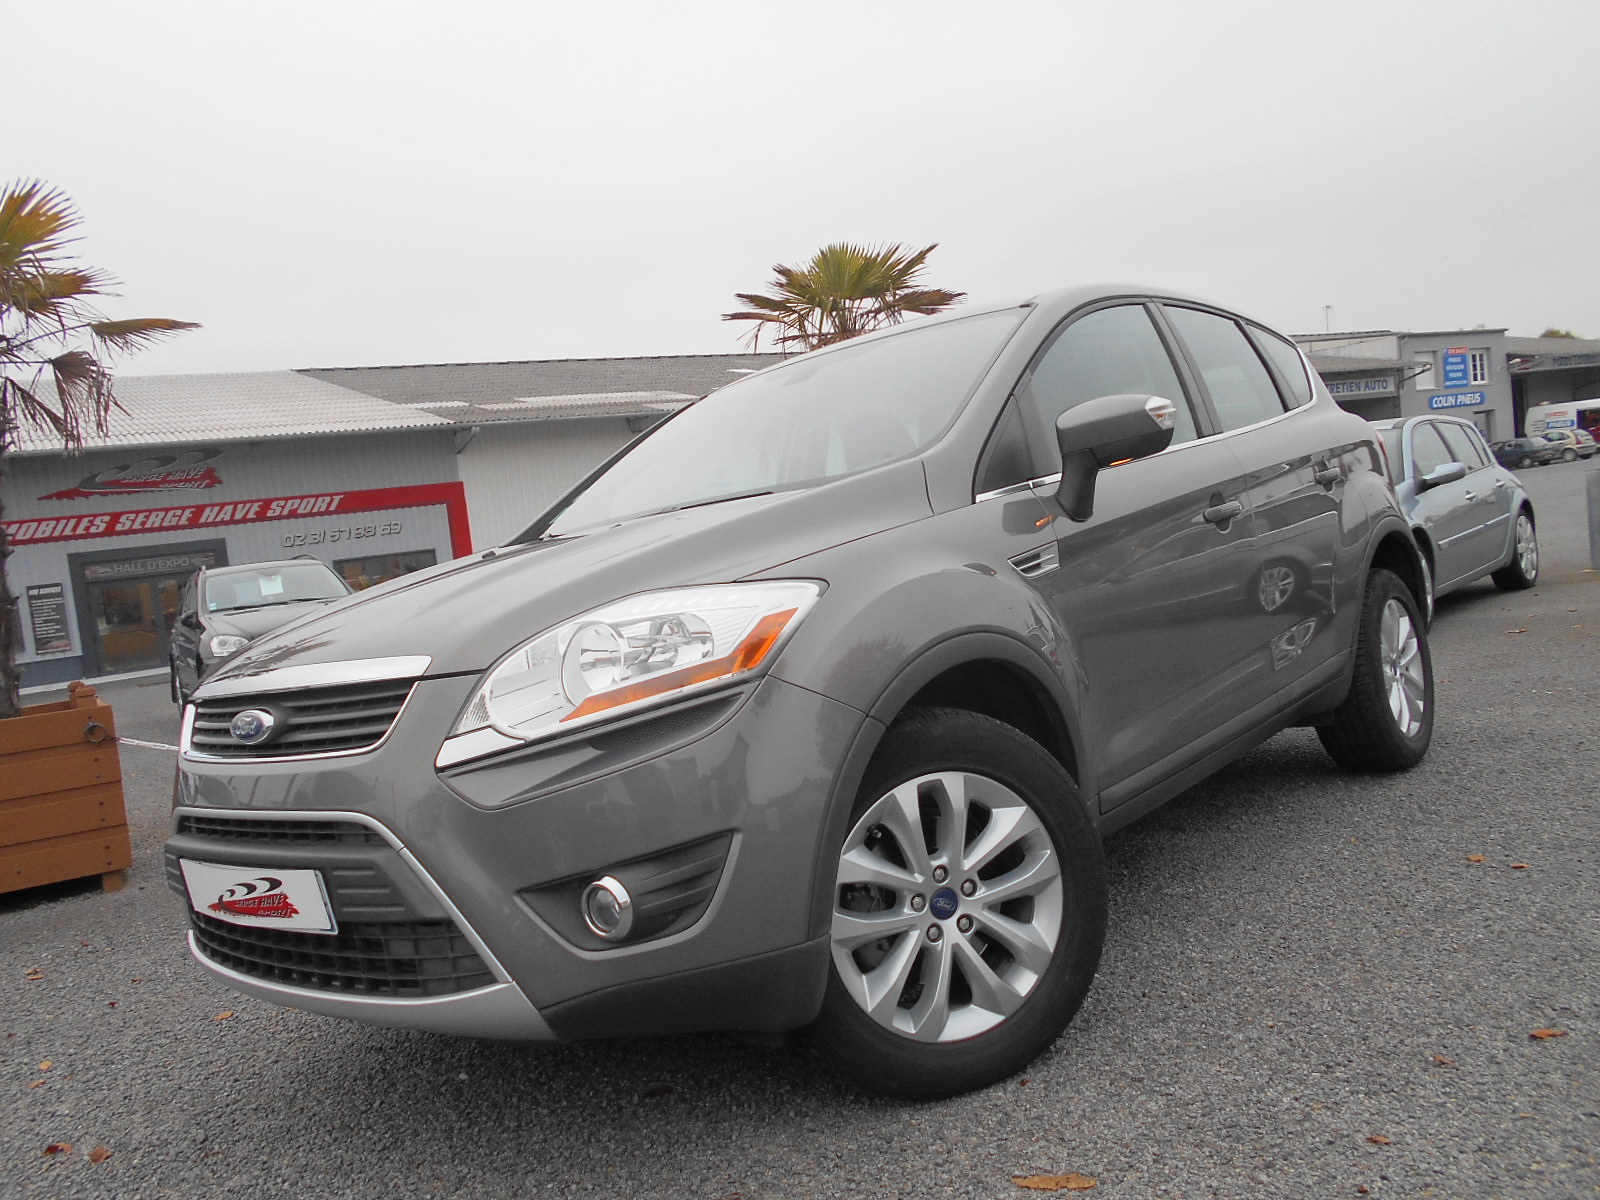 ford kuga 2 0 tdci 140 titanium 4 4 powershift serge have sport. Black Bedroom Furniture Sets. Home Design Ideas